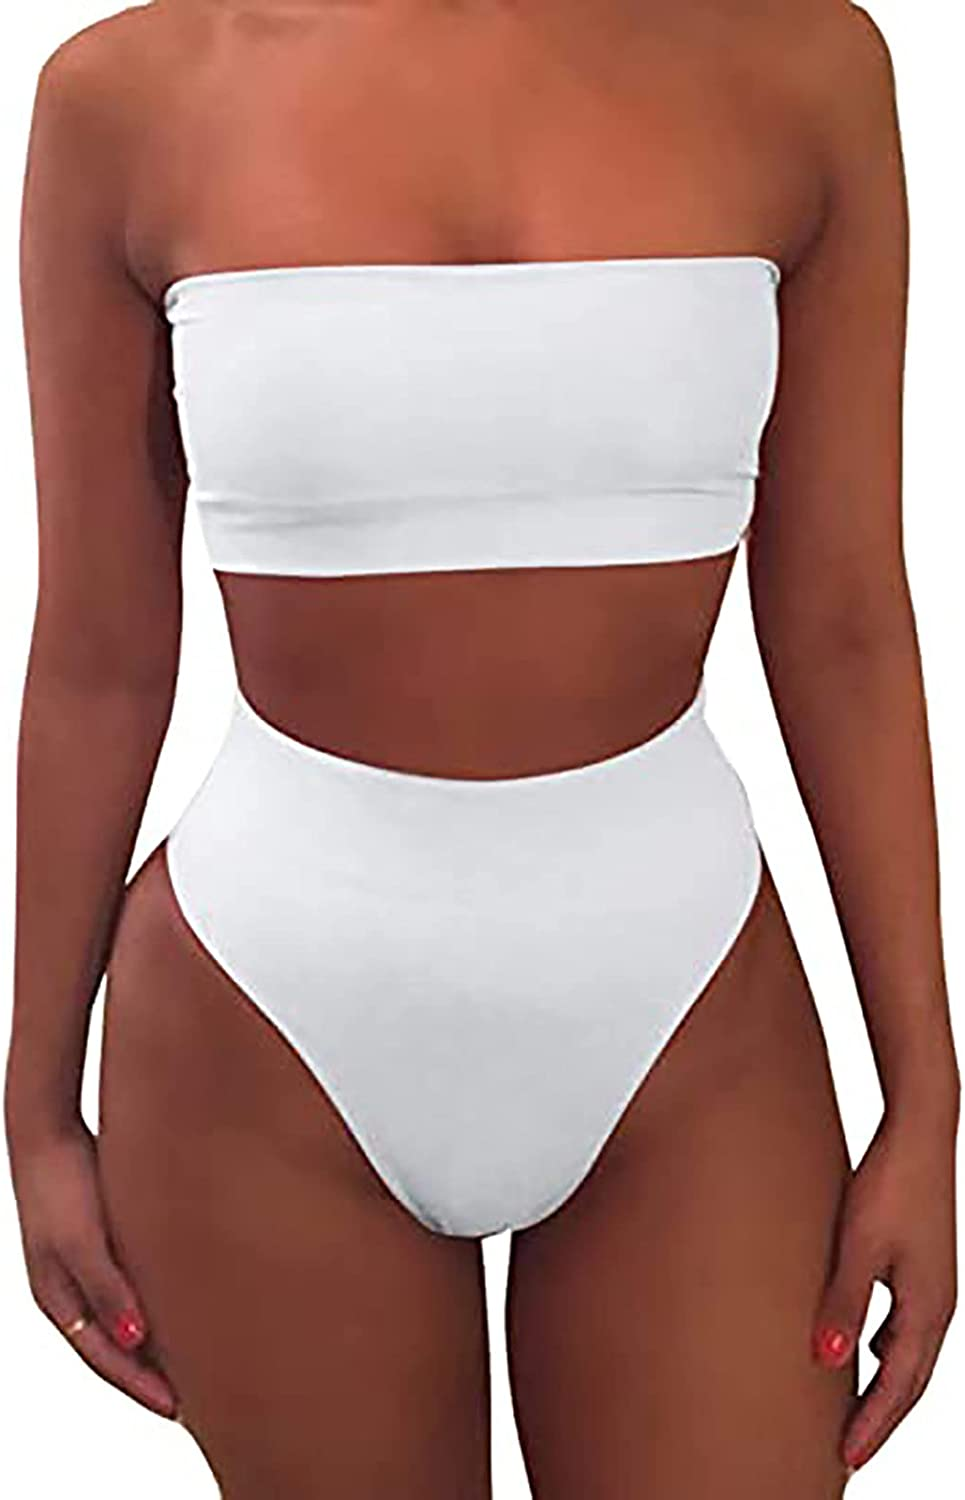 Zainafacai Swimsuit for Women Women's Pad C Attention brand Removable Wrap Strap New mail order